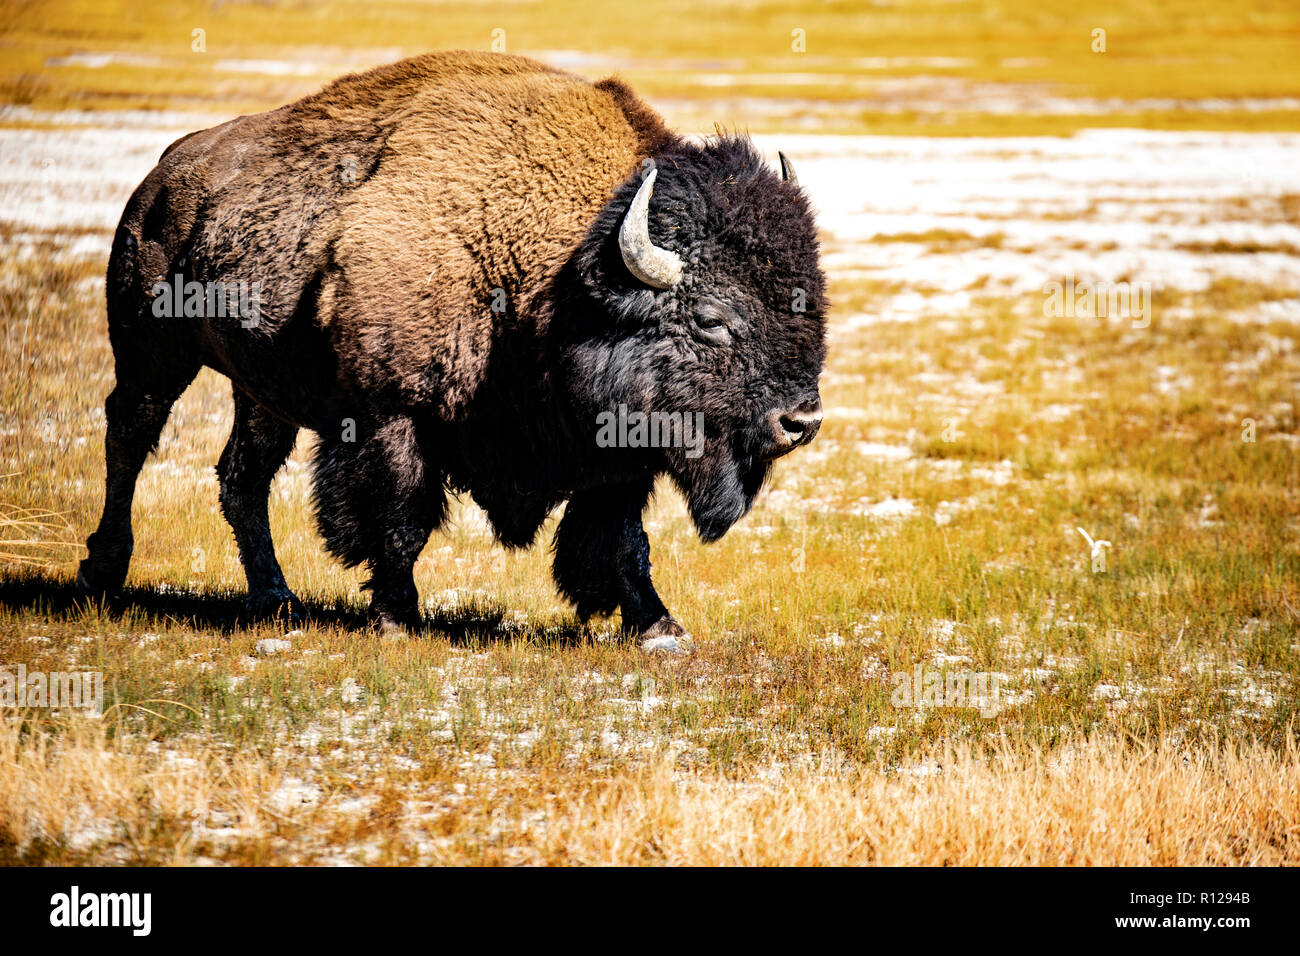 WY03601-00...WYOMING - Bison in Yellowstone National Park. - Stock Image